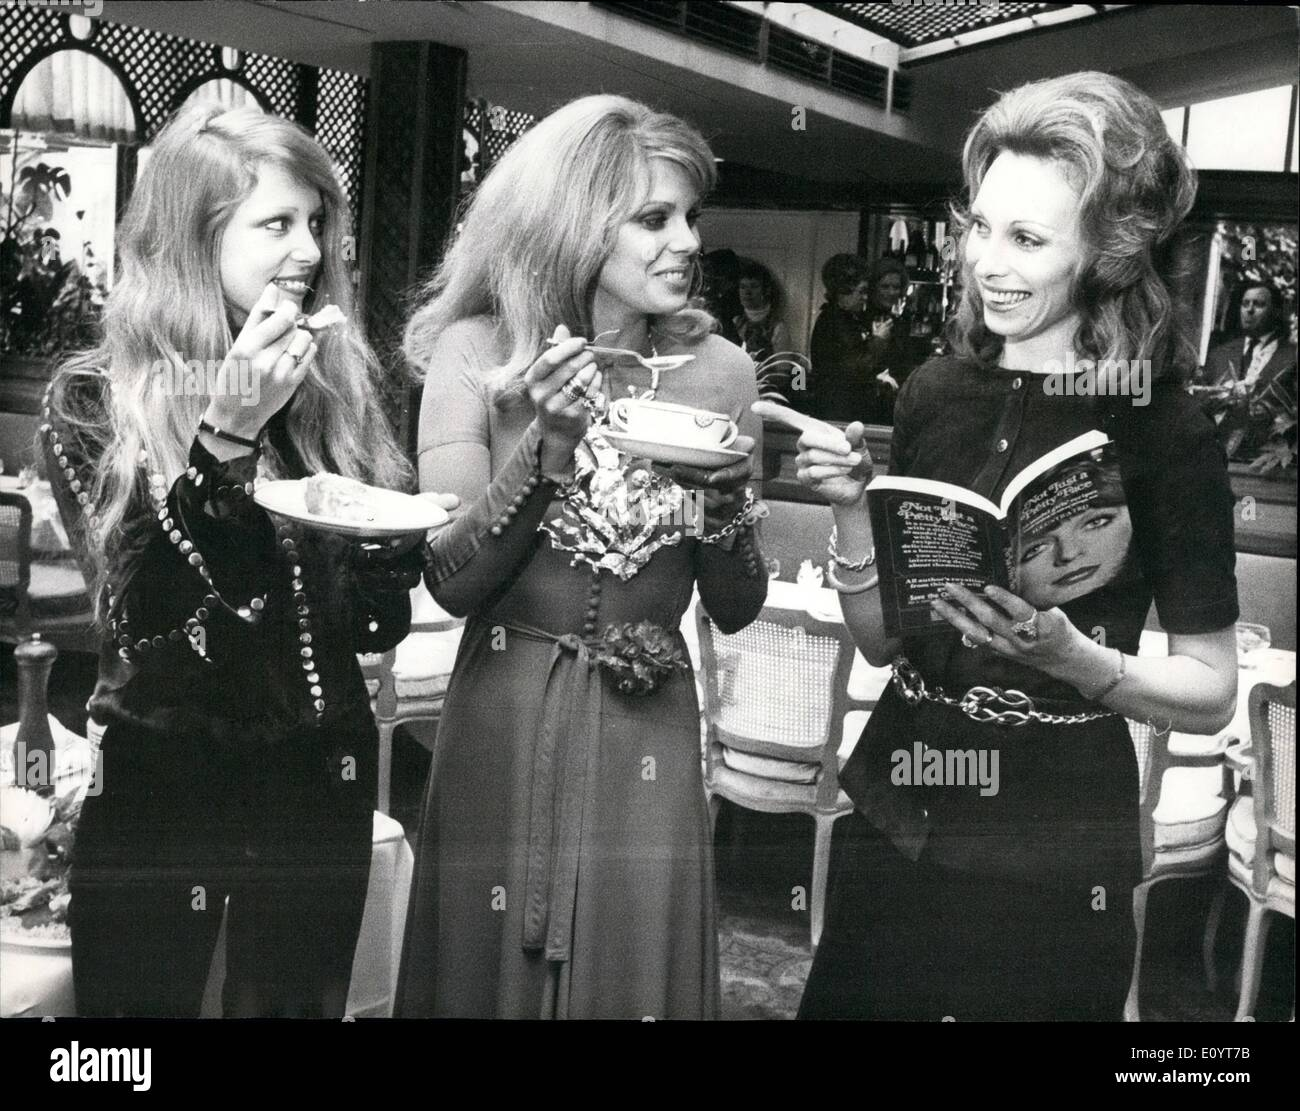 May 05, 1971 - New cookery book ''Not just a pretty face'' launched at a reception at Les Ambassadeurs Club,: a reception was held this morning at the les Ambassadeurs Club, hamilton place. WI for the launching of a new cookery book by gaynor Millington, called ''Not just a Pretty Face''. which lists a variety of dishes chosen by 50 leading Models, Gaynor Millington, a former model hereself is donating all her author's royalties from the book to The Save the children Fund. The book is published by Corgi Books at a price of 50p. Photo shows seen trying out some of the recipes, L-R - Stock Image